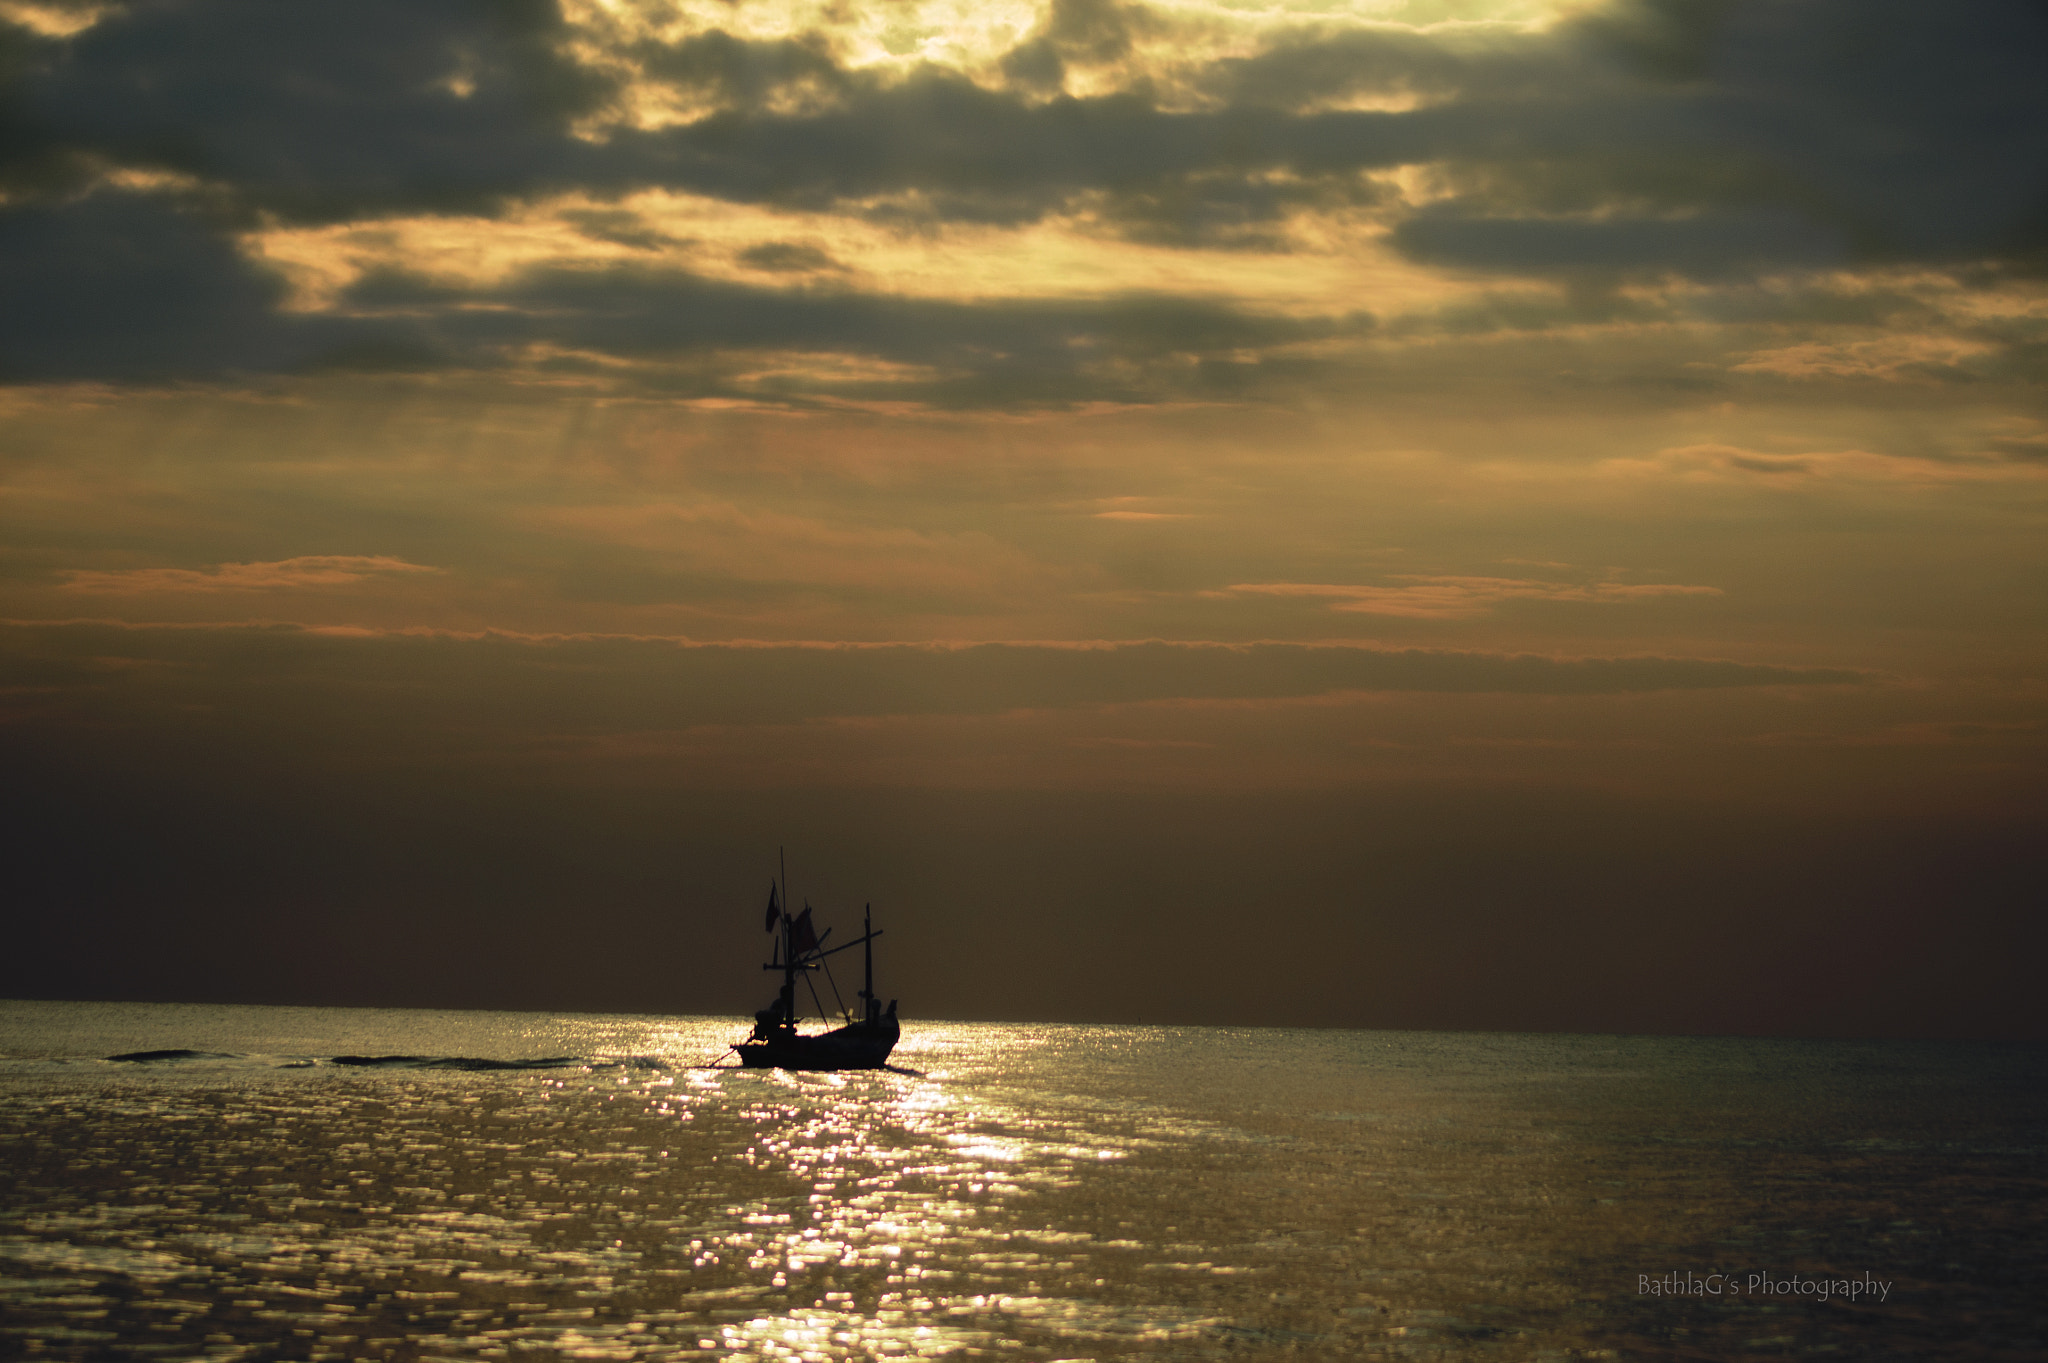 Photograph The lone sailor by Gaurav Bathla on 500px